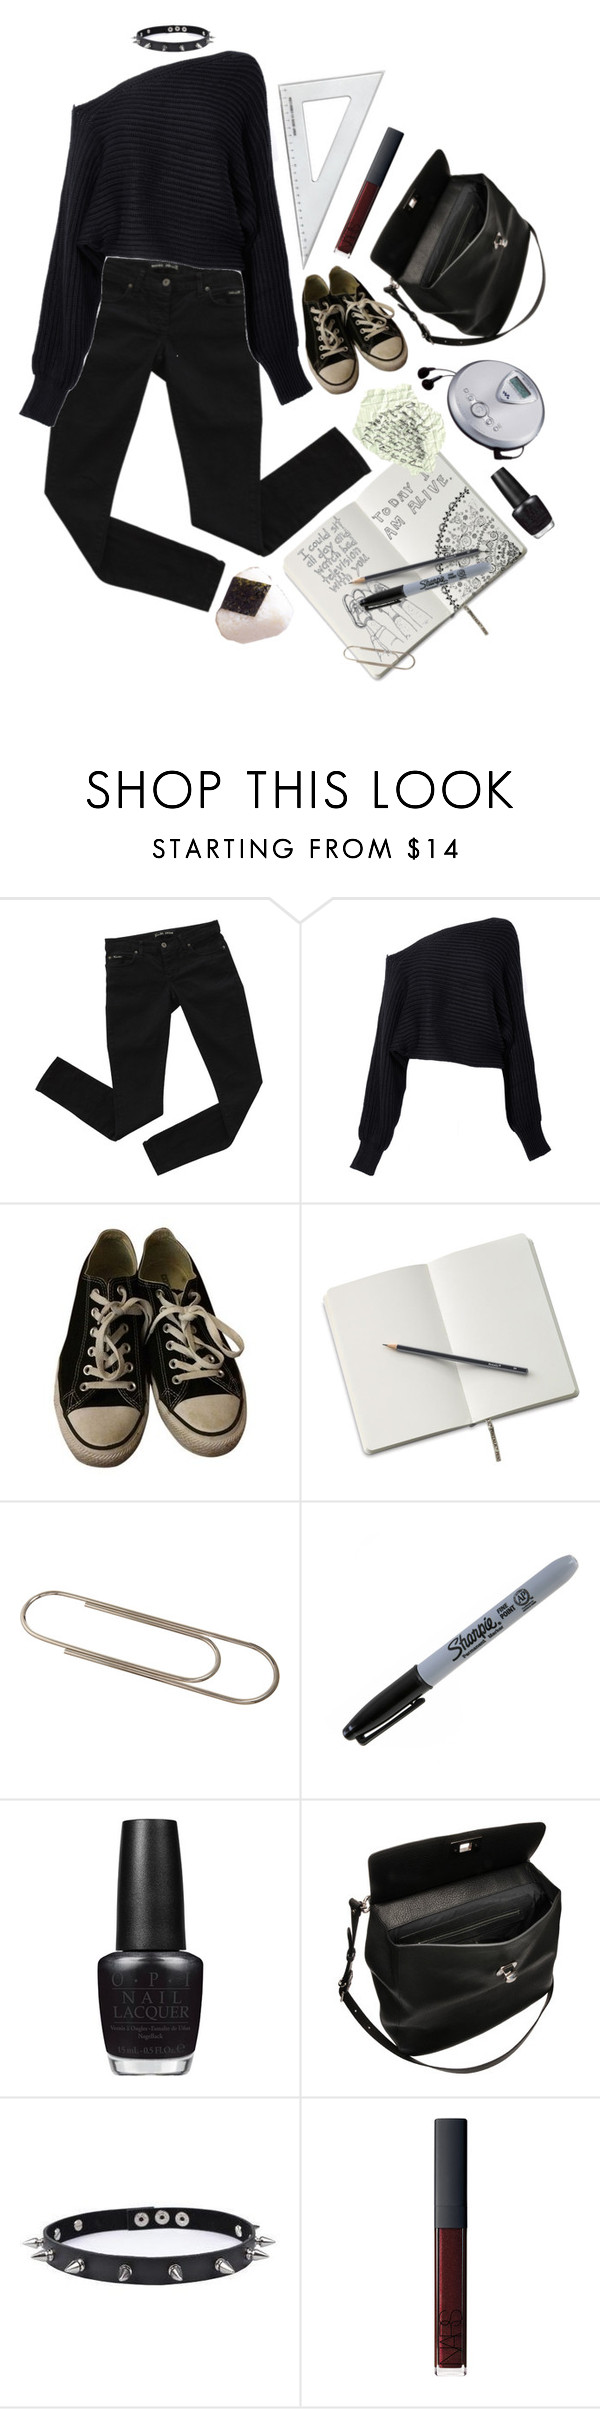 """Being fourteen and full of dreams"" by septembrie ❤ liked on Polyvore featuring Bardot, Alexander Wang, Converse, Carl Auböck, Sony, Sharpie, OPI, Marni, Trend Cool and NARS Cosmetics"